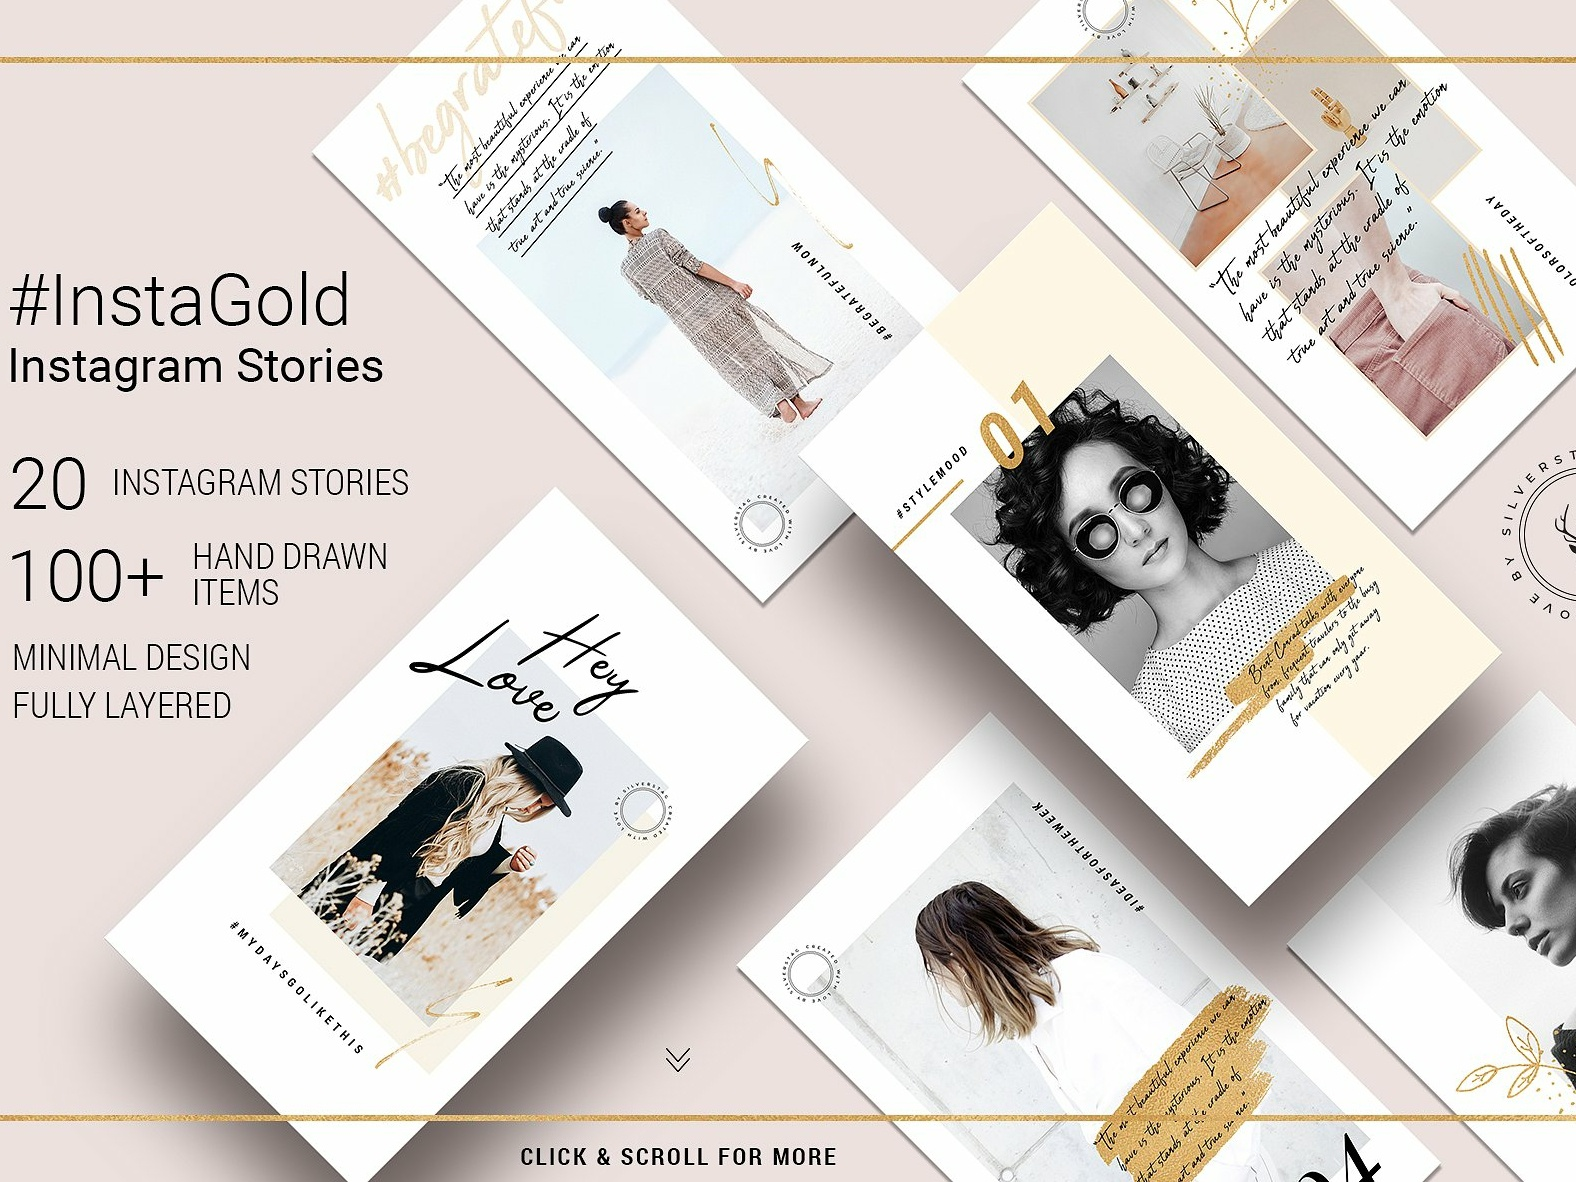 #InstaGold Minimal Instagram Stories stories elegant social media templates blogger branding templates social media template minimal design hand drawn golden gold template insta gold gold instagram posts instagram story instagram minimal instagram stories minimal instagram stories